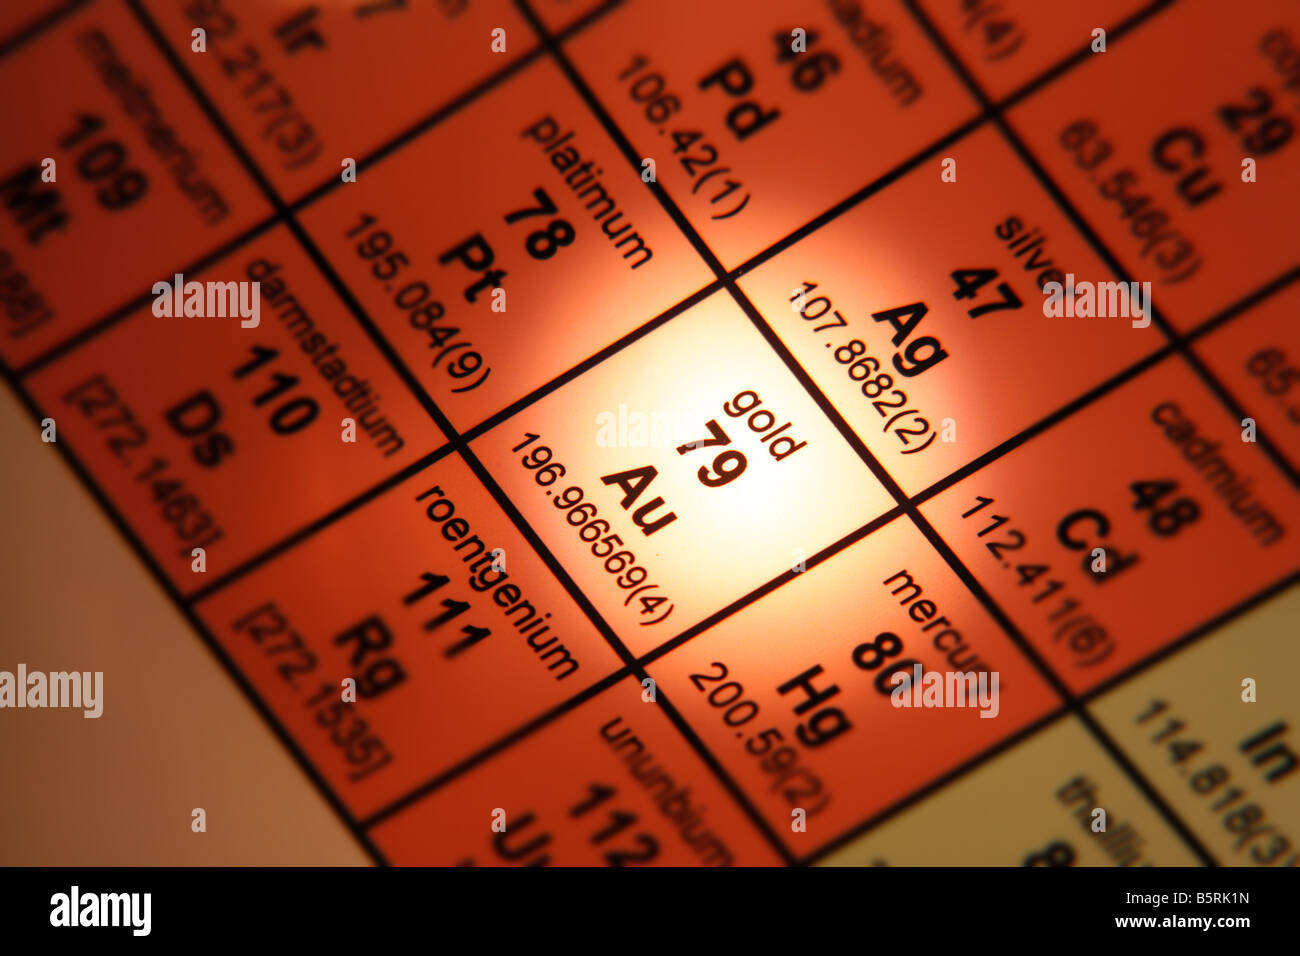 Periodic table of elements gold au stock photo 20803489 alamy periodic table of elements gold au urtaz